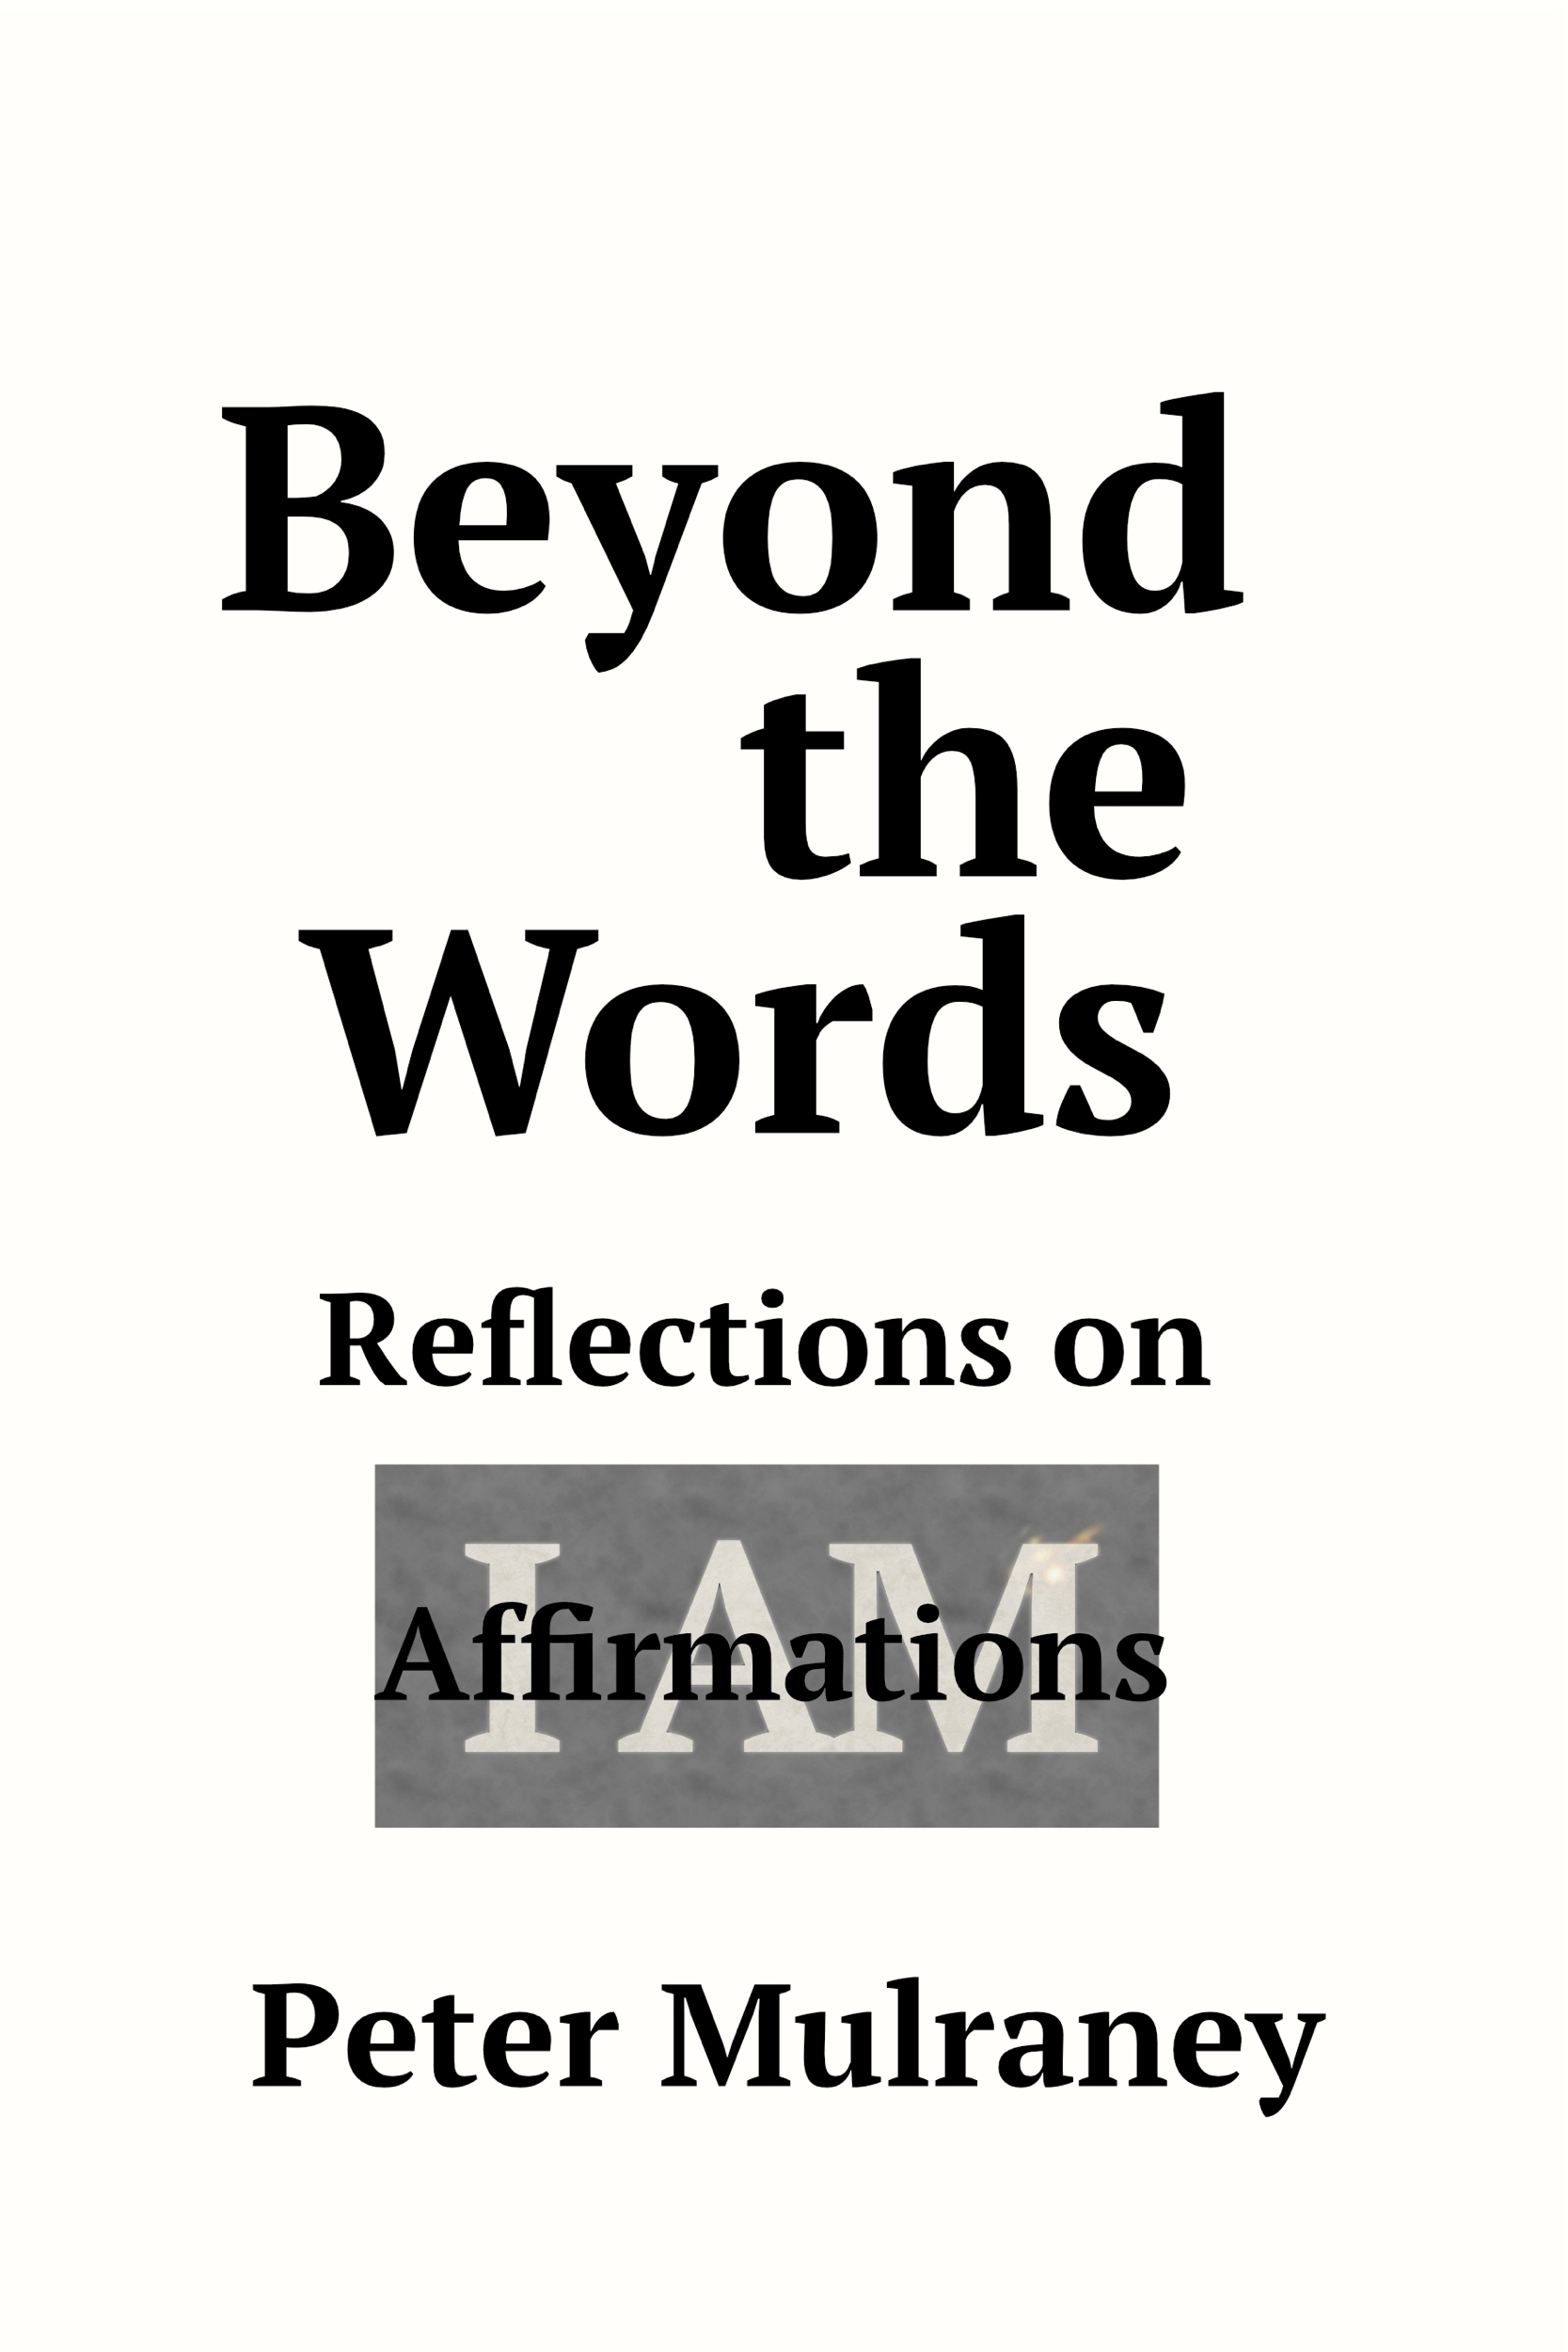 Beyond the Words: Reflections on I Am Affirmations, an Ebook by Peter  Mulraney